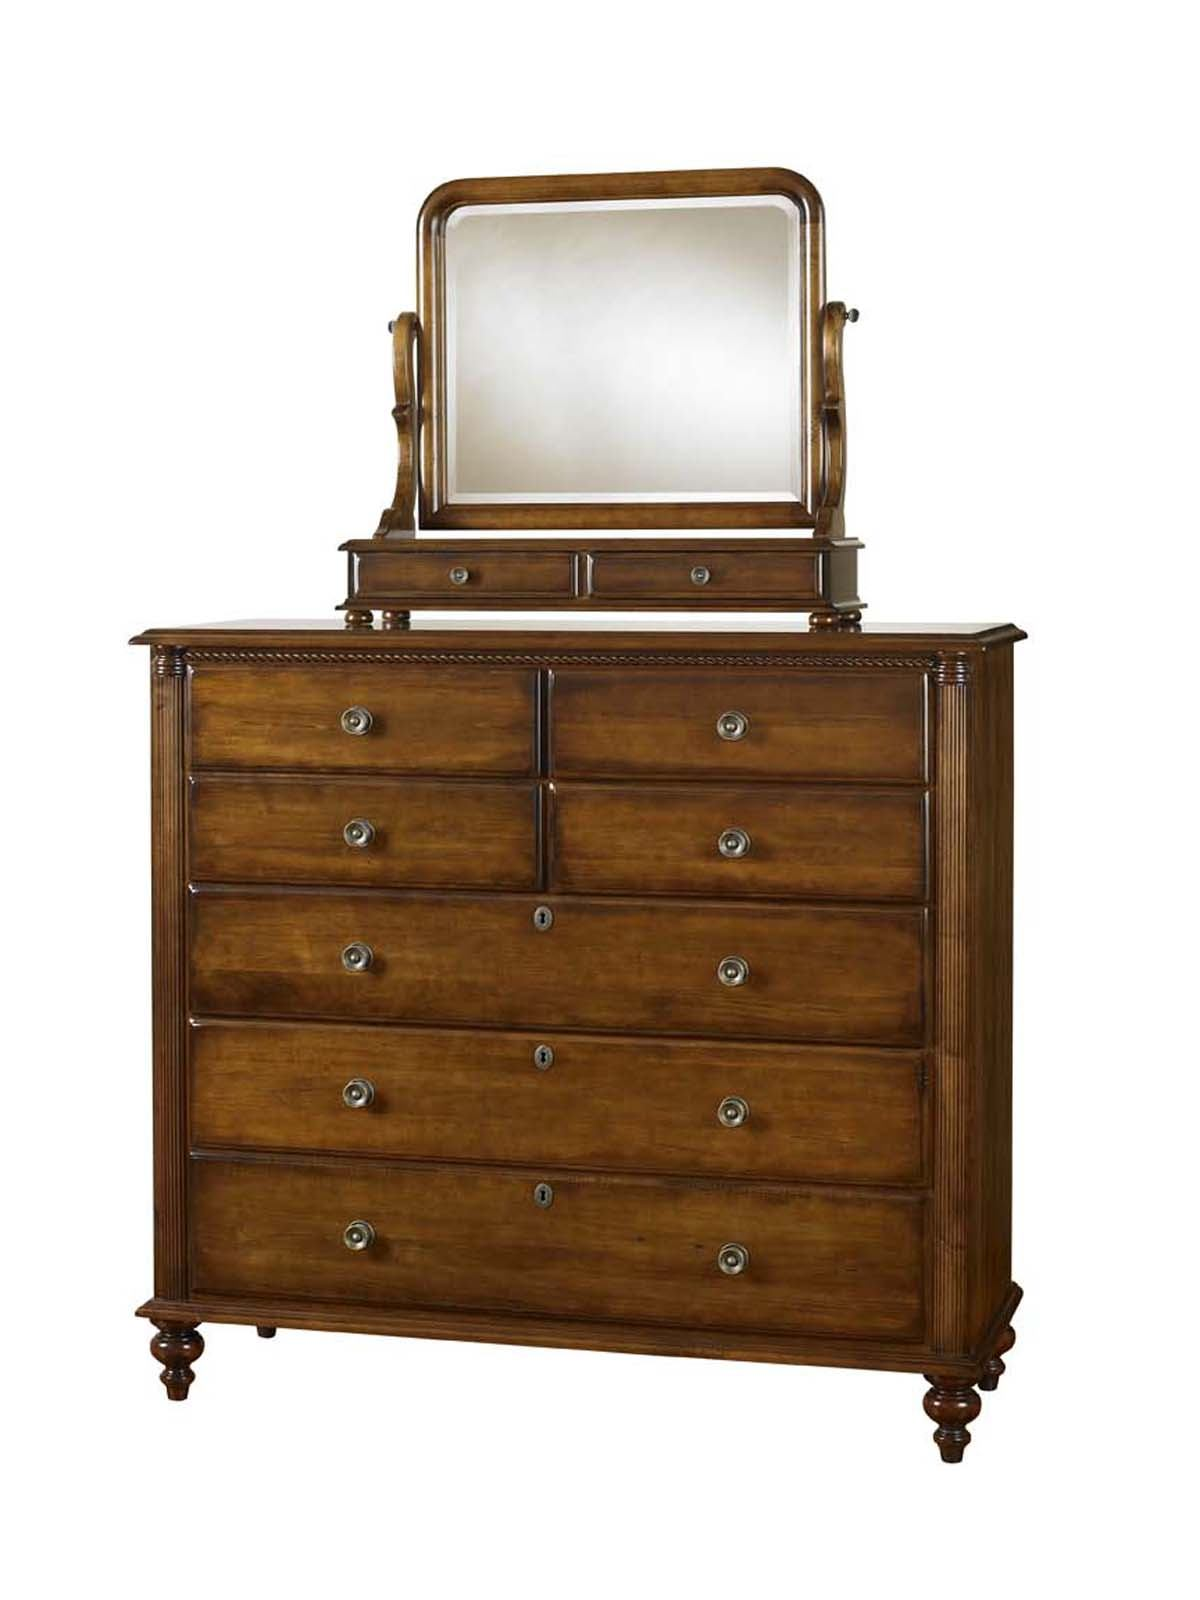 Durham Furniture Savile Row Dressing Chest in Park Lane finish (Dressing Mirror sold separately)